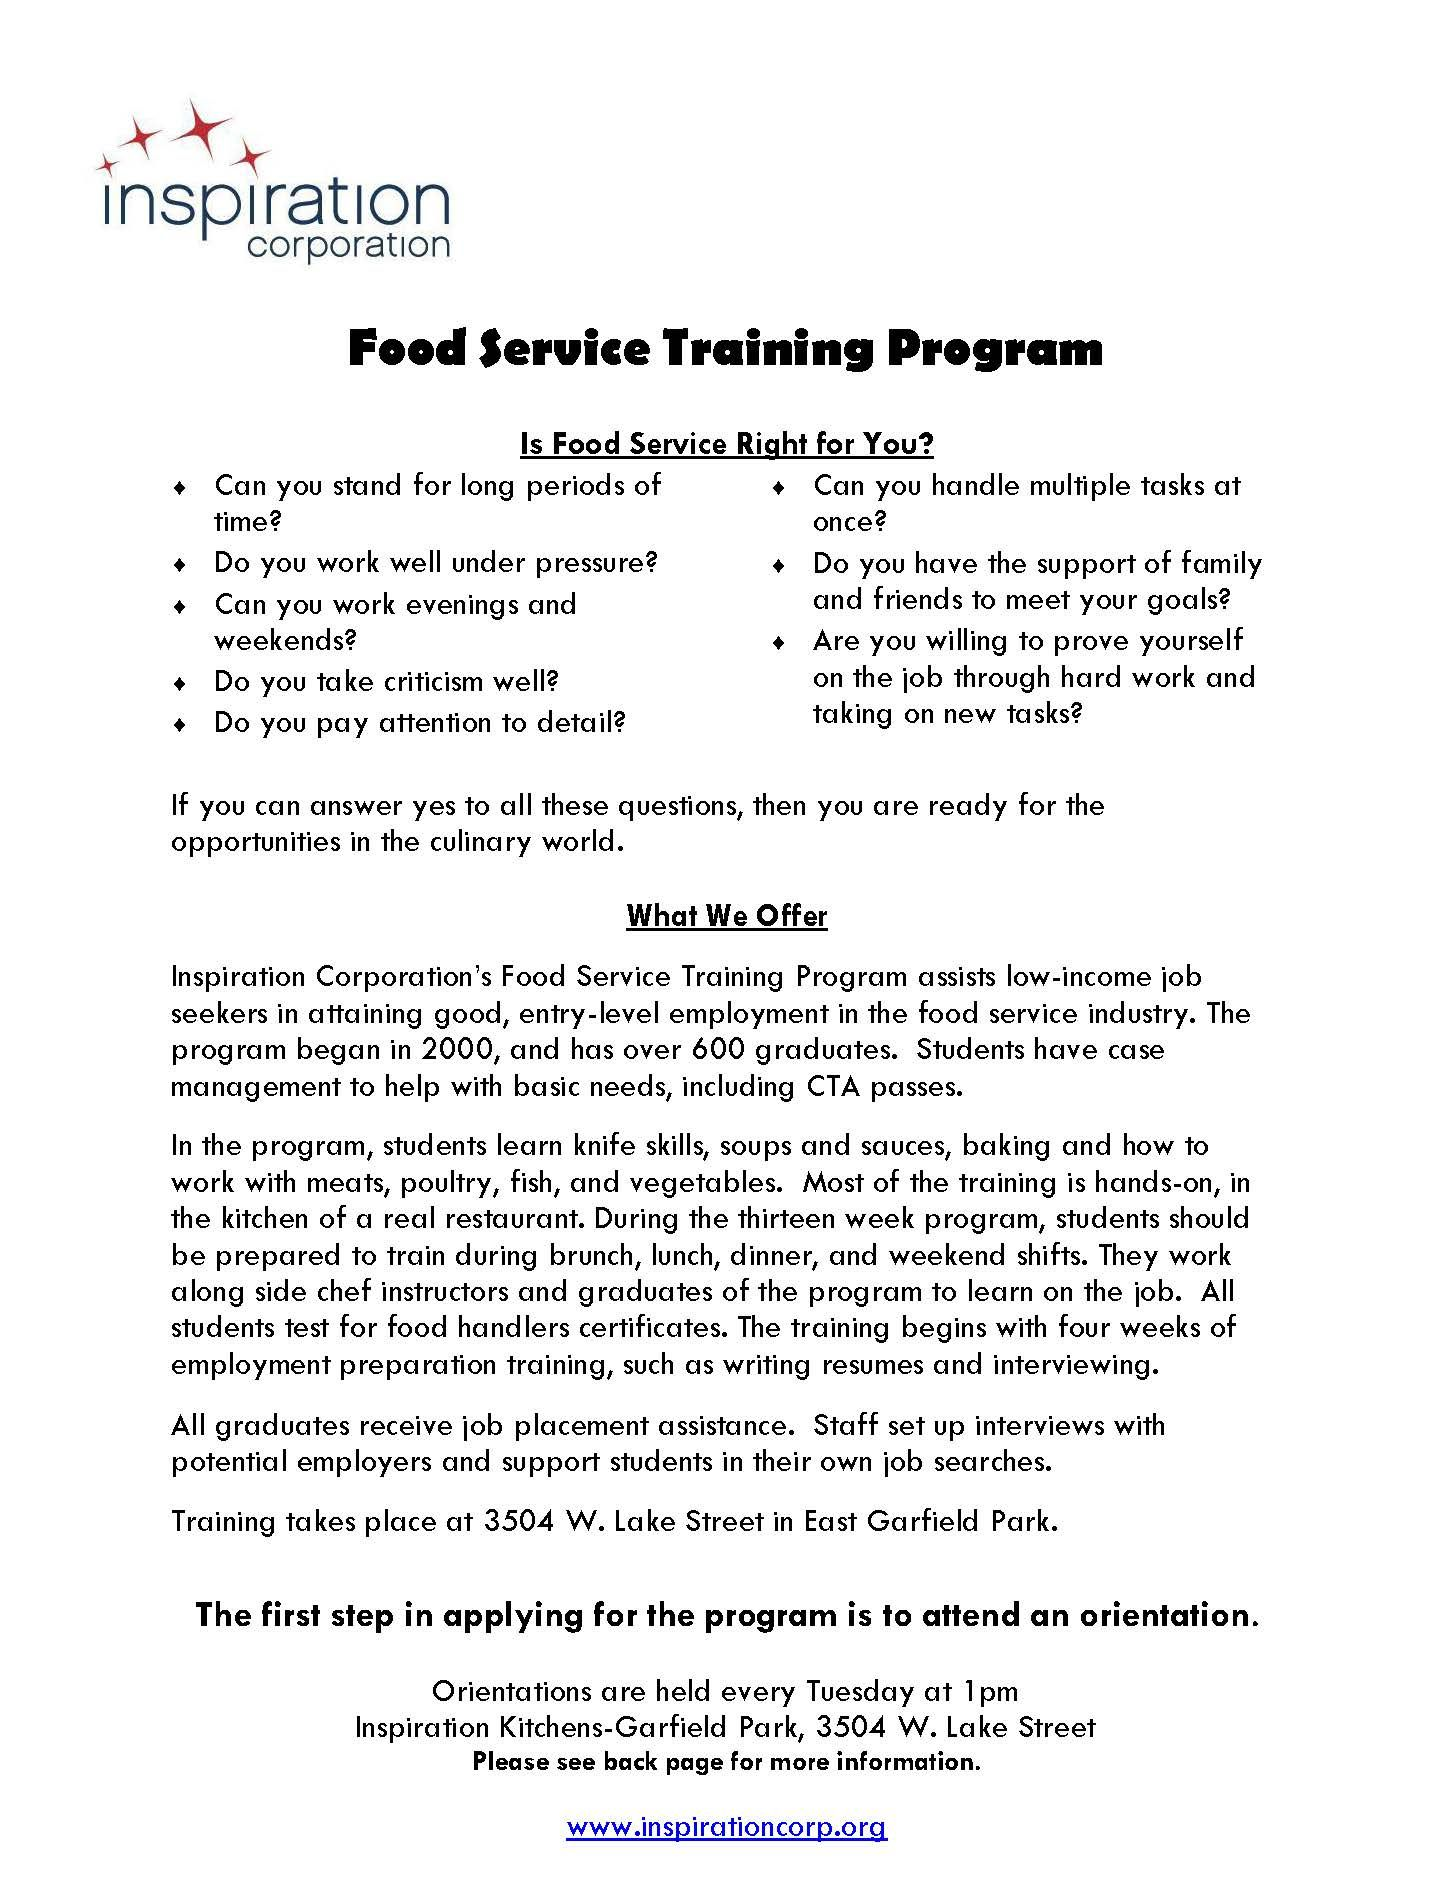 Food service training program available to job seekers